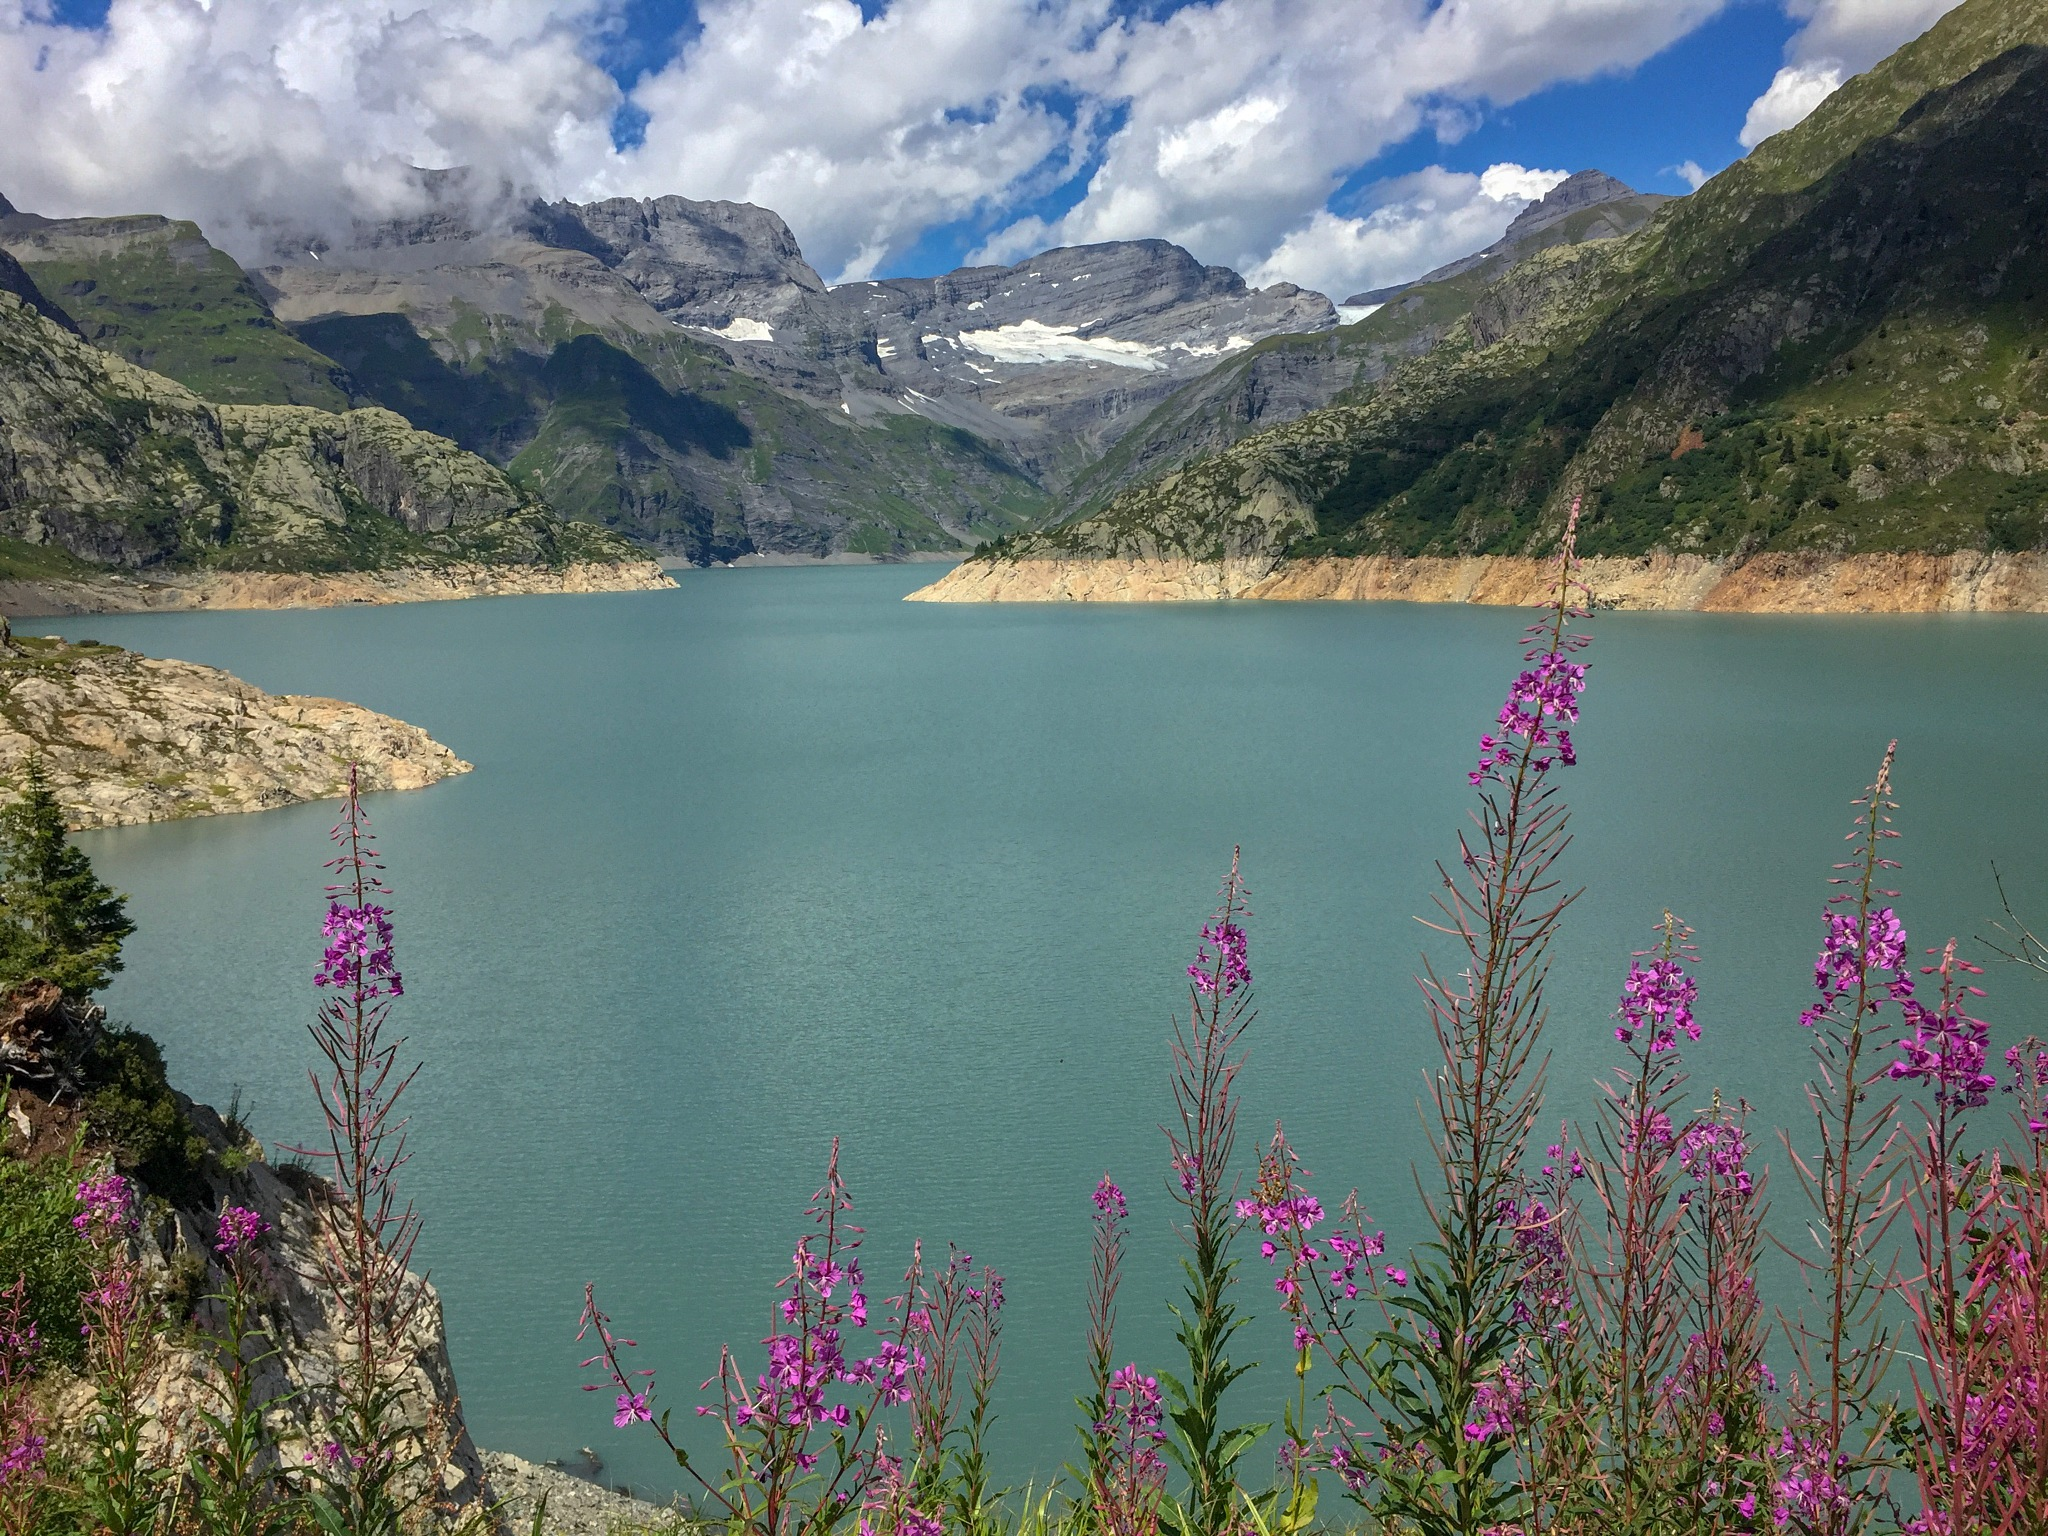 Hike to Lac d'Emosson  by Kristin